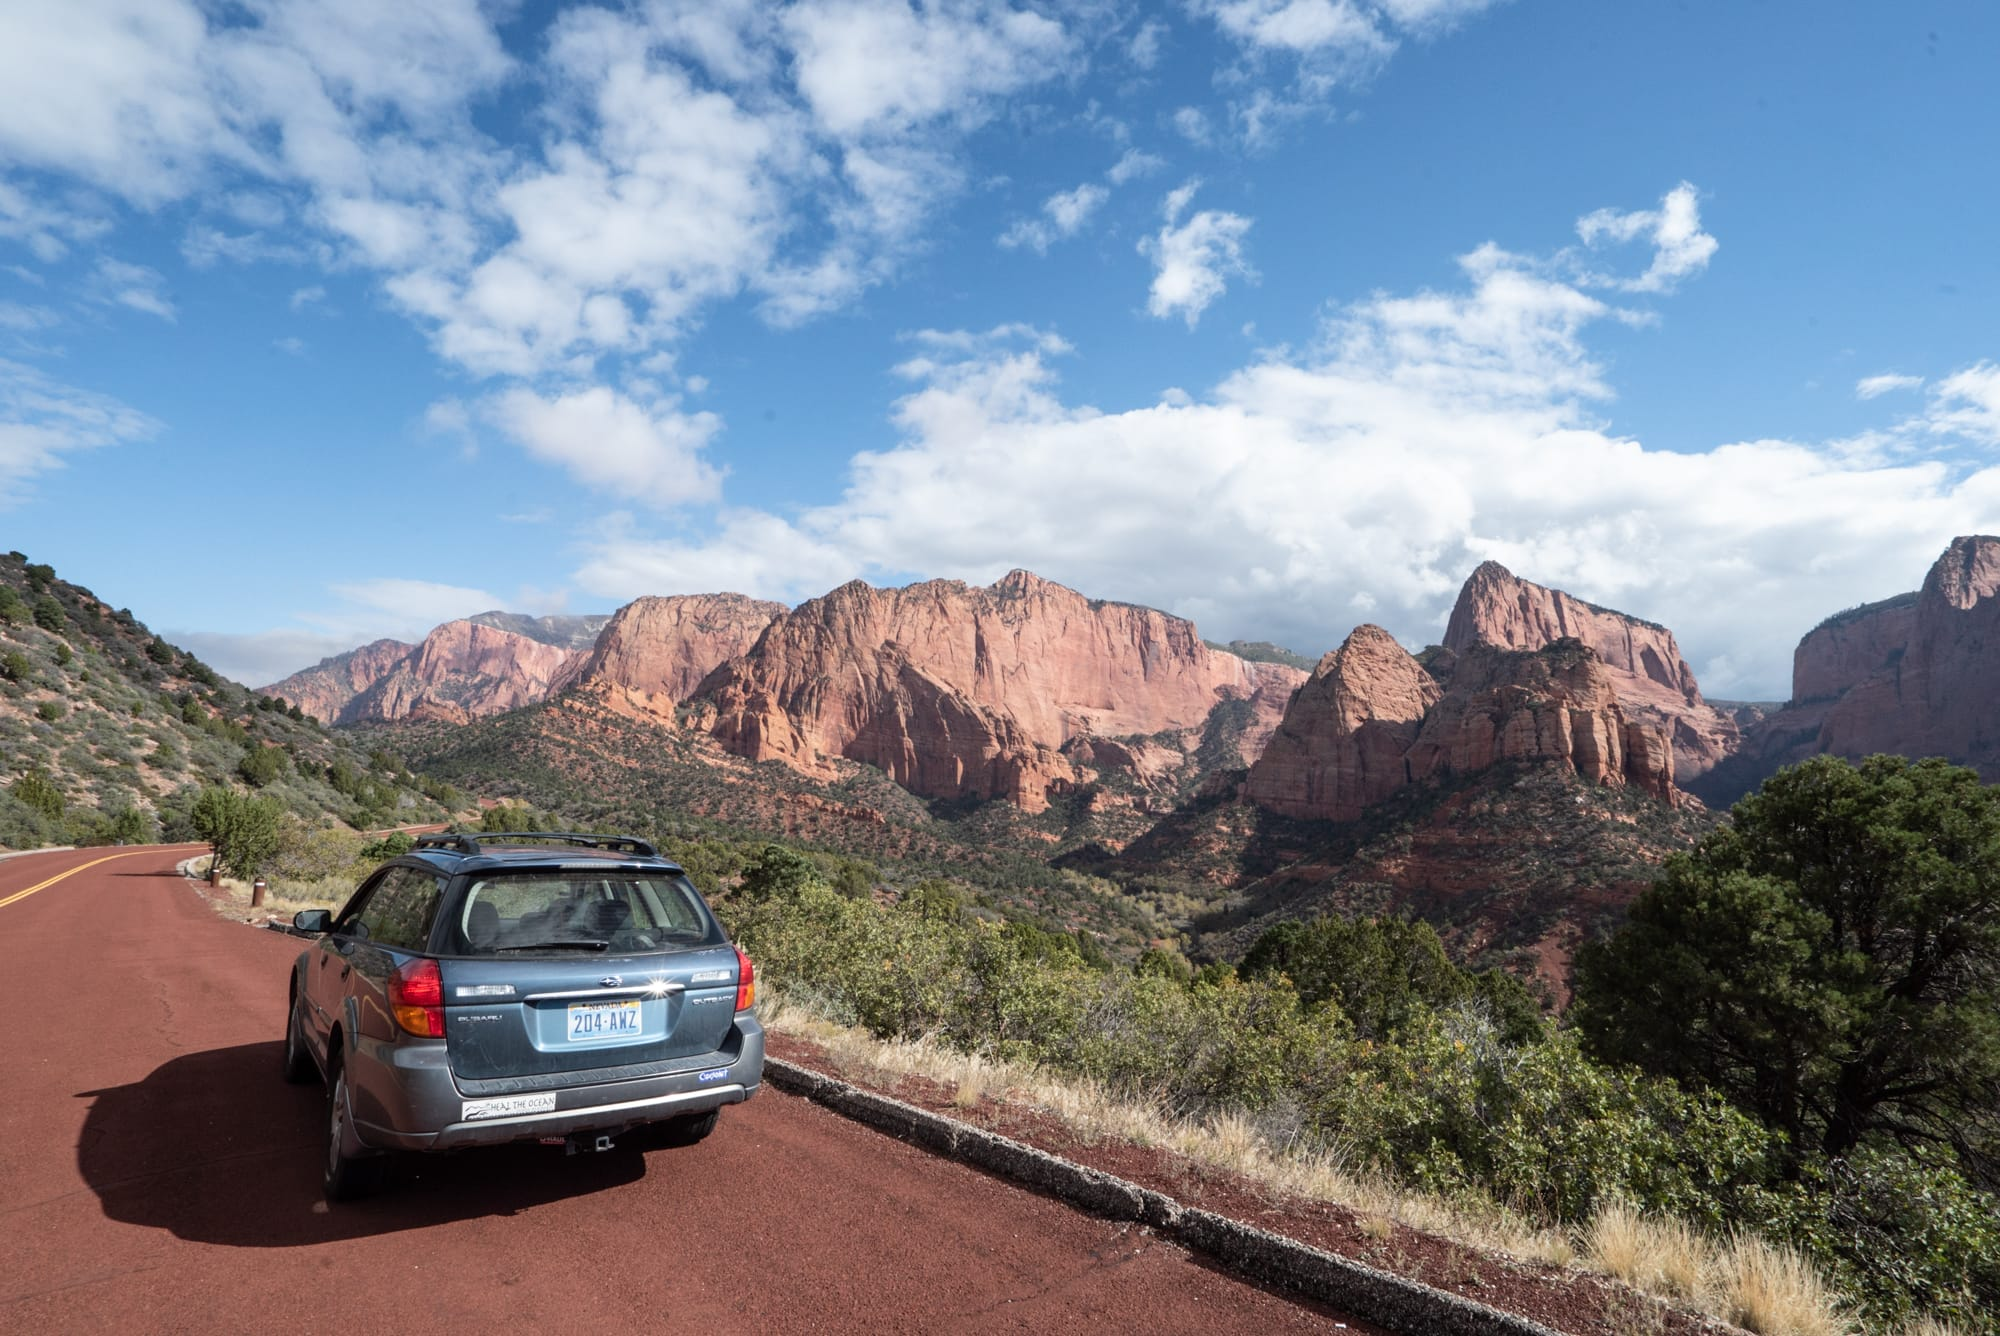 Get our complete road trip essentials packing checklist for adventure travelers including useful gear and necessities for an epic trip.